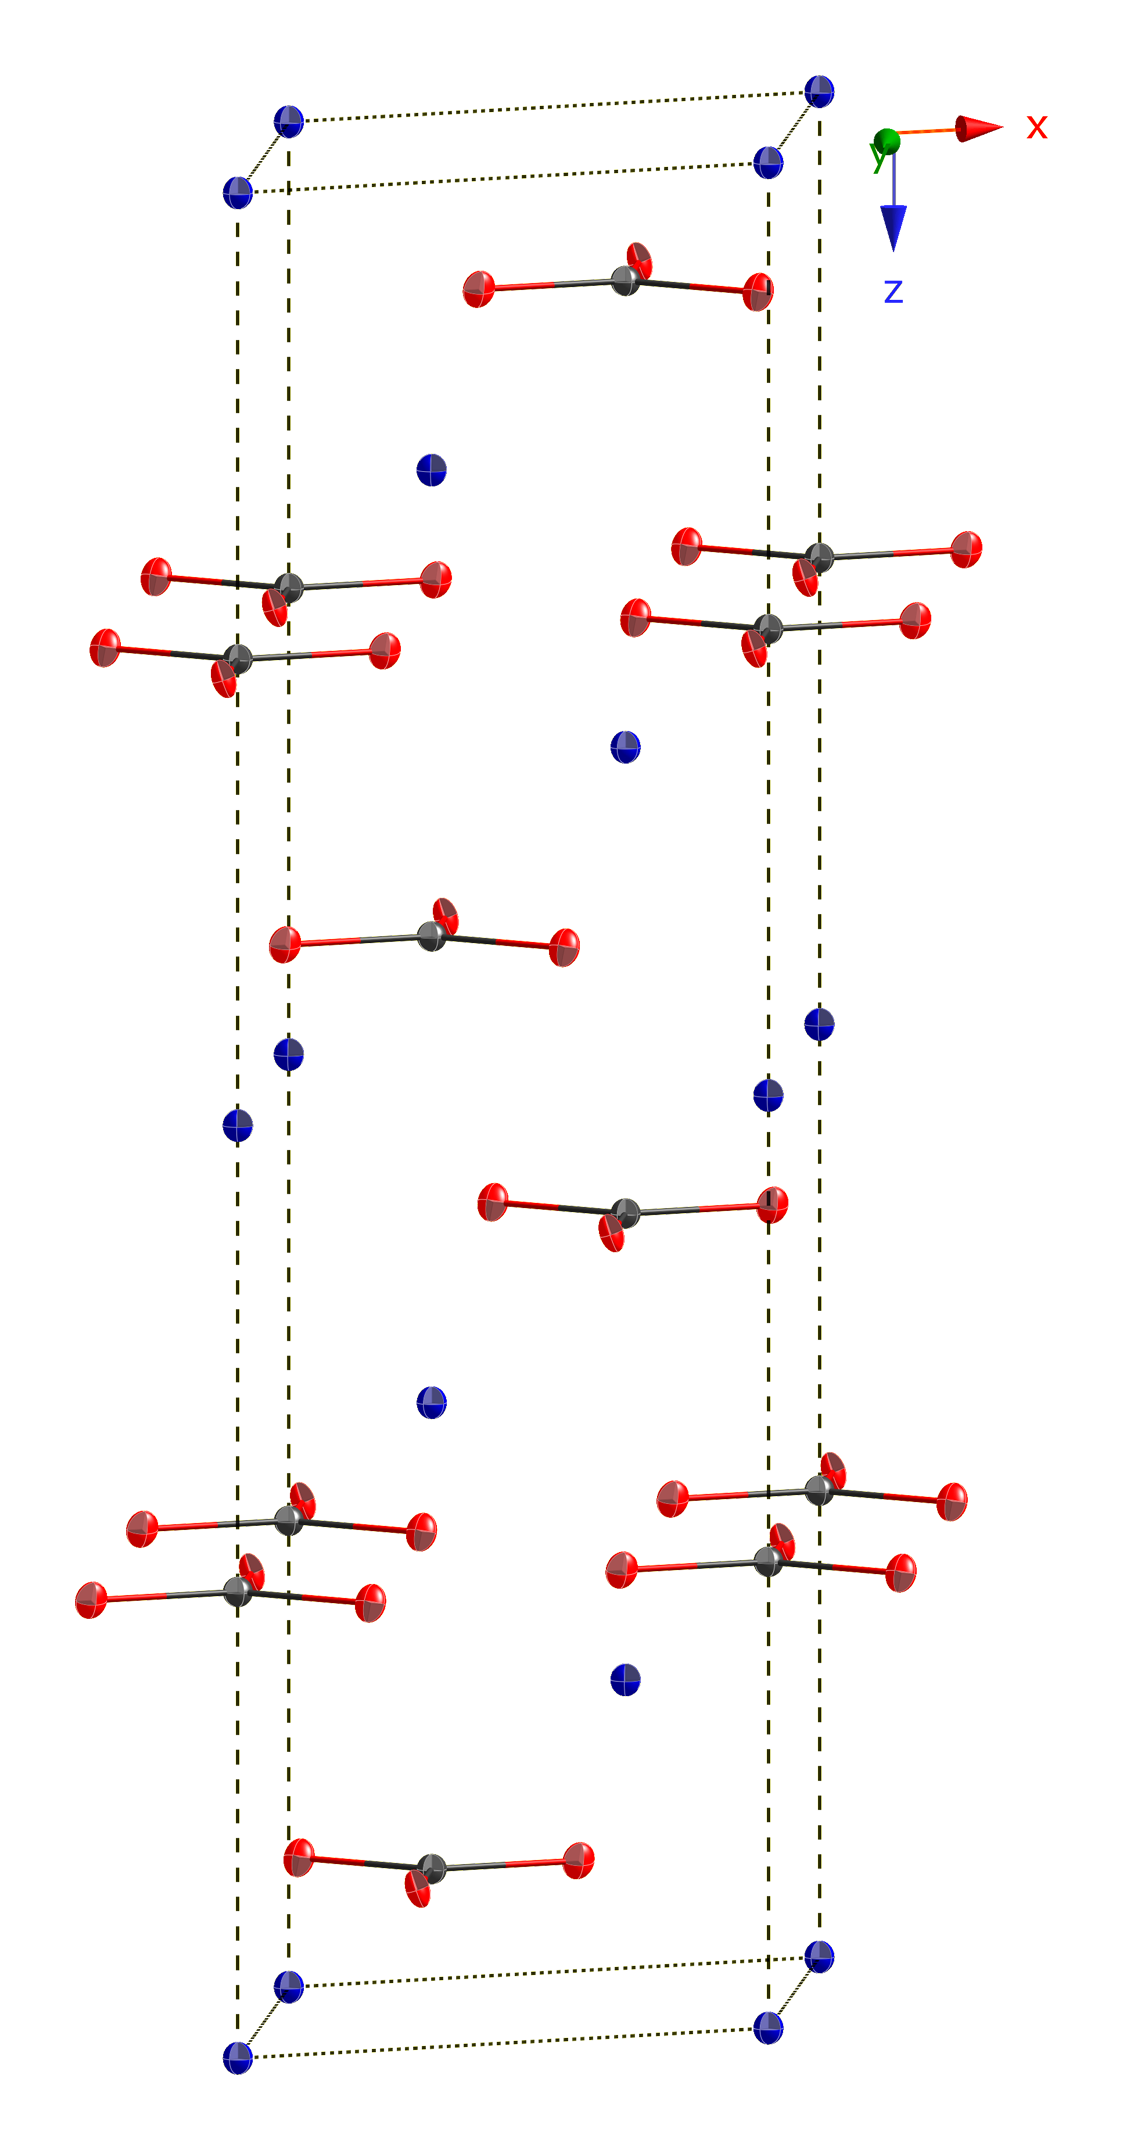 Thermal ellipsoid model of the unit cell of cobalt(II) carbonate